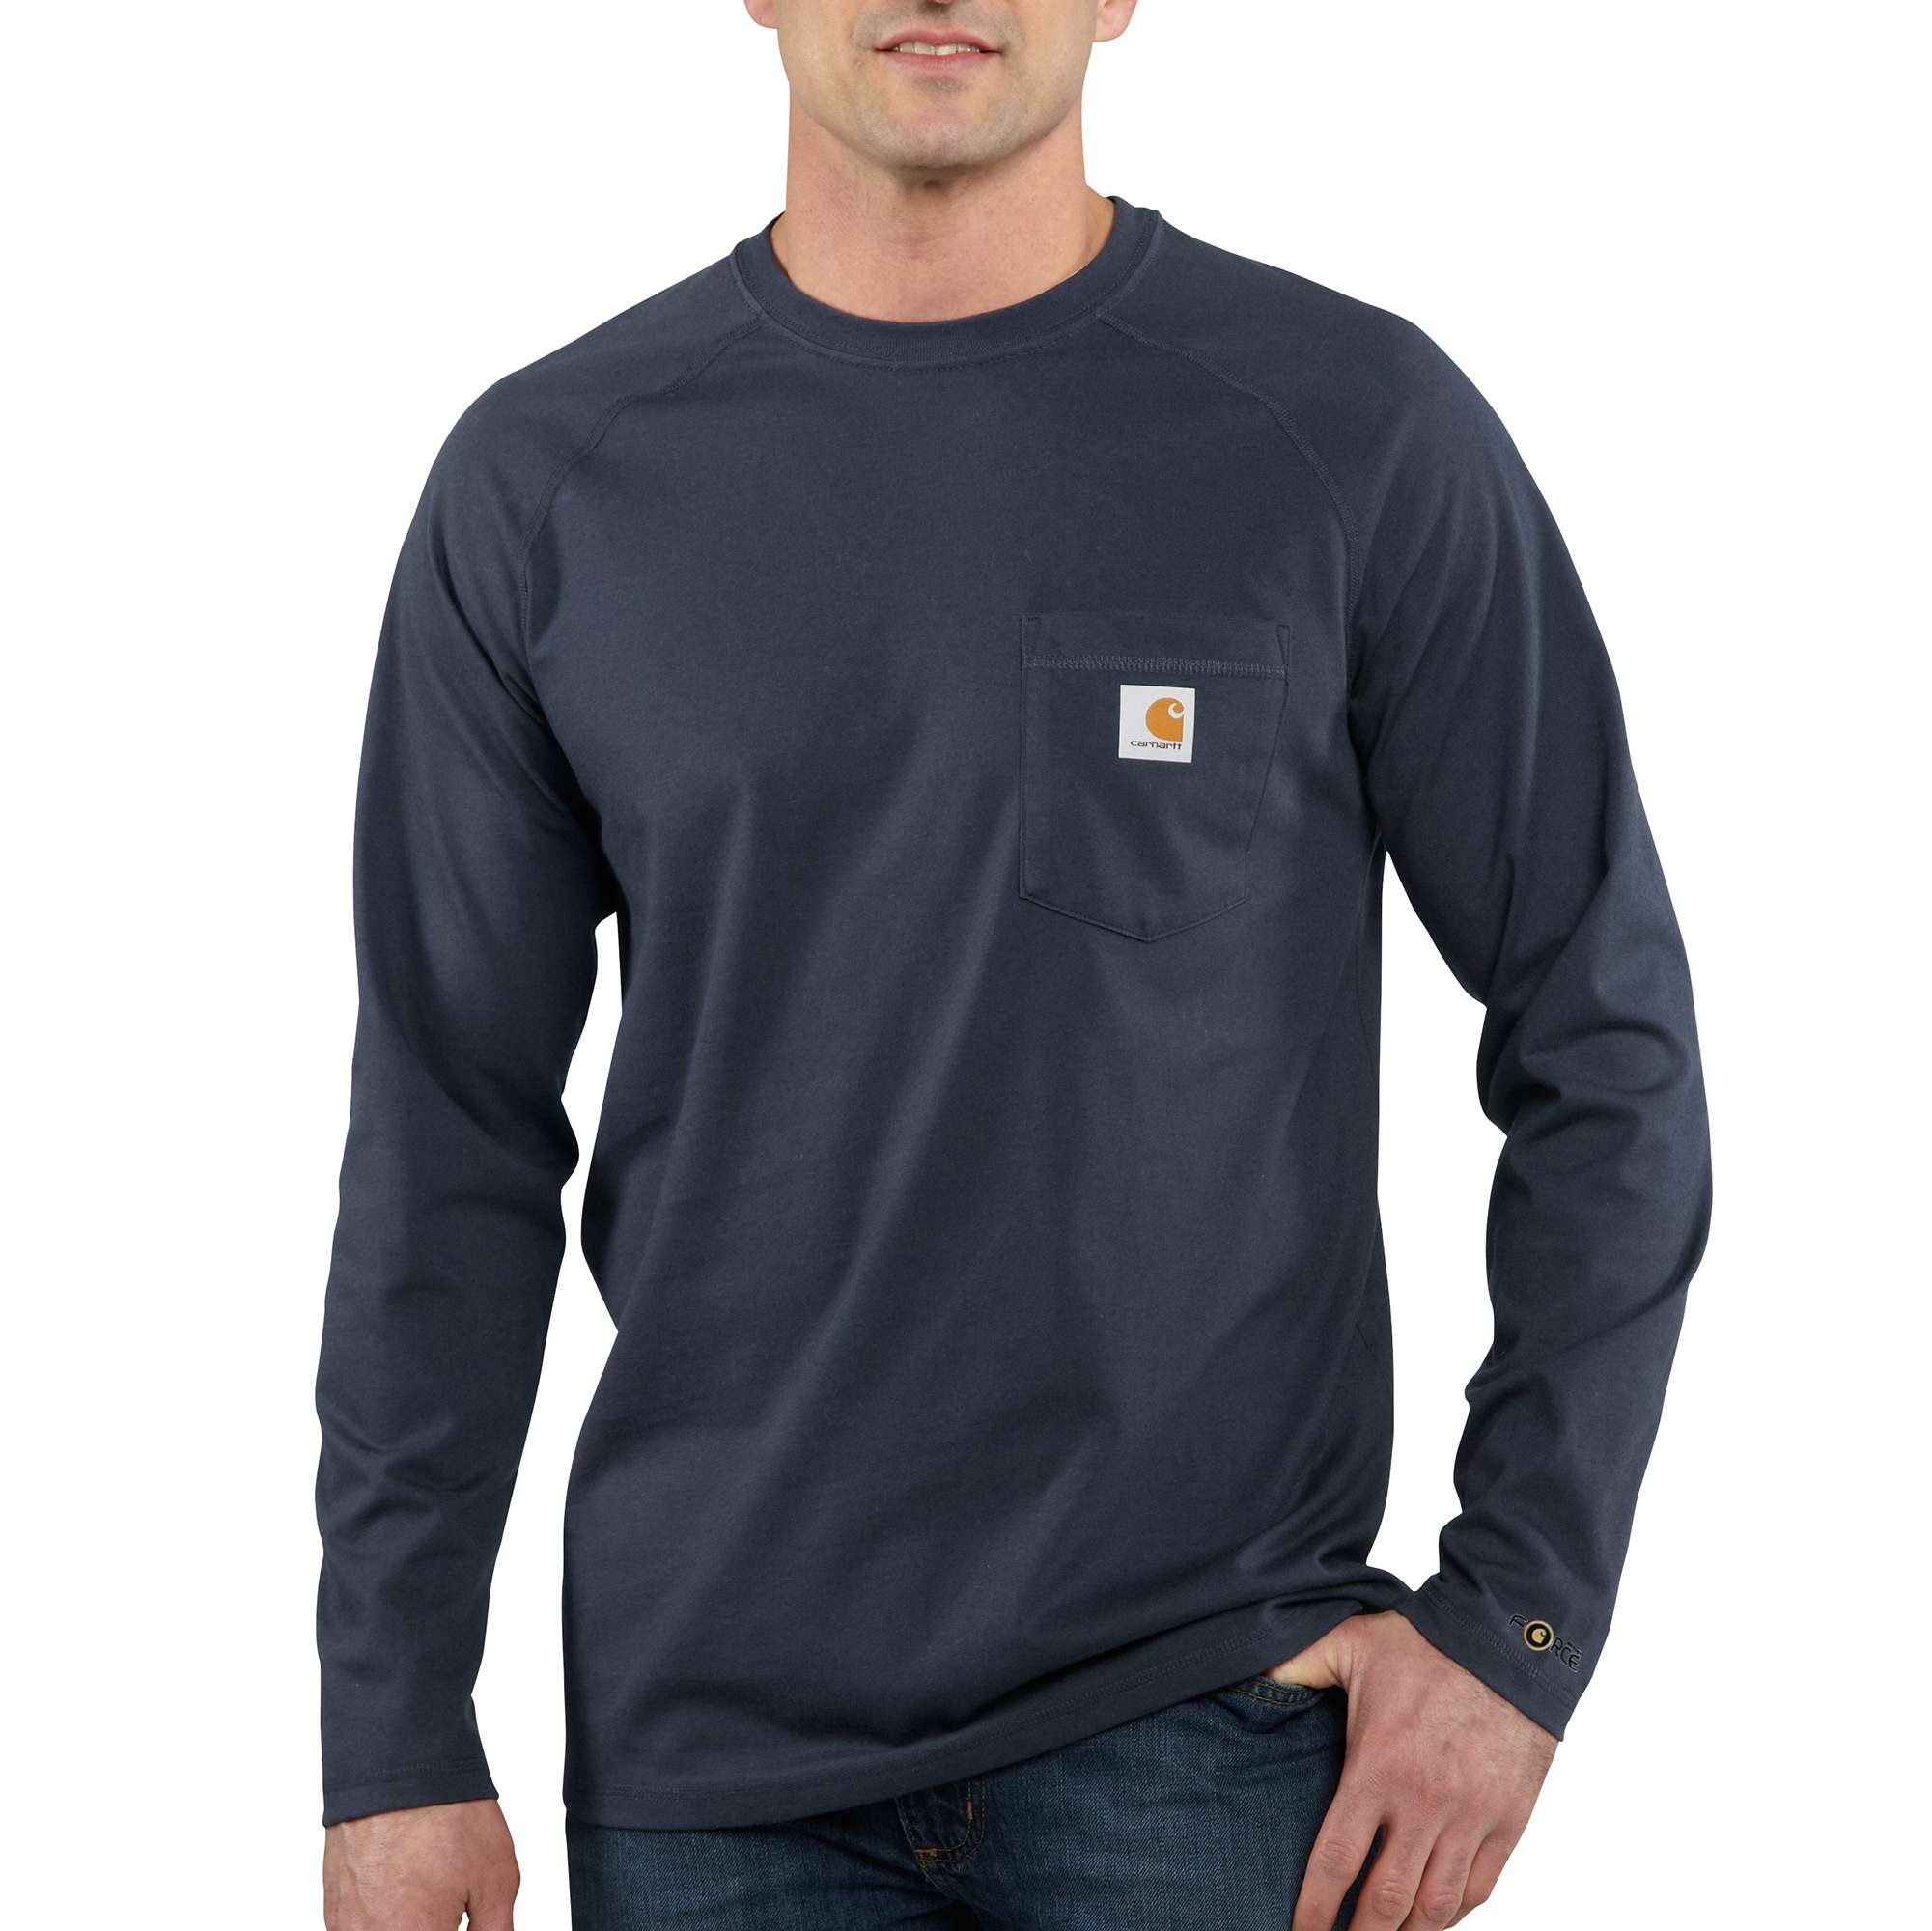 Men's Long Sleeve Force Cotton Tee, Navy, swatch